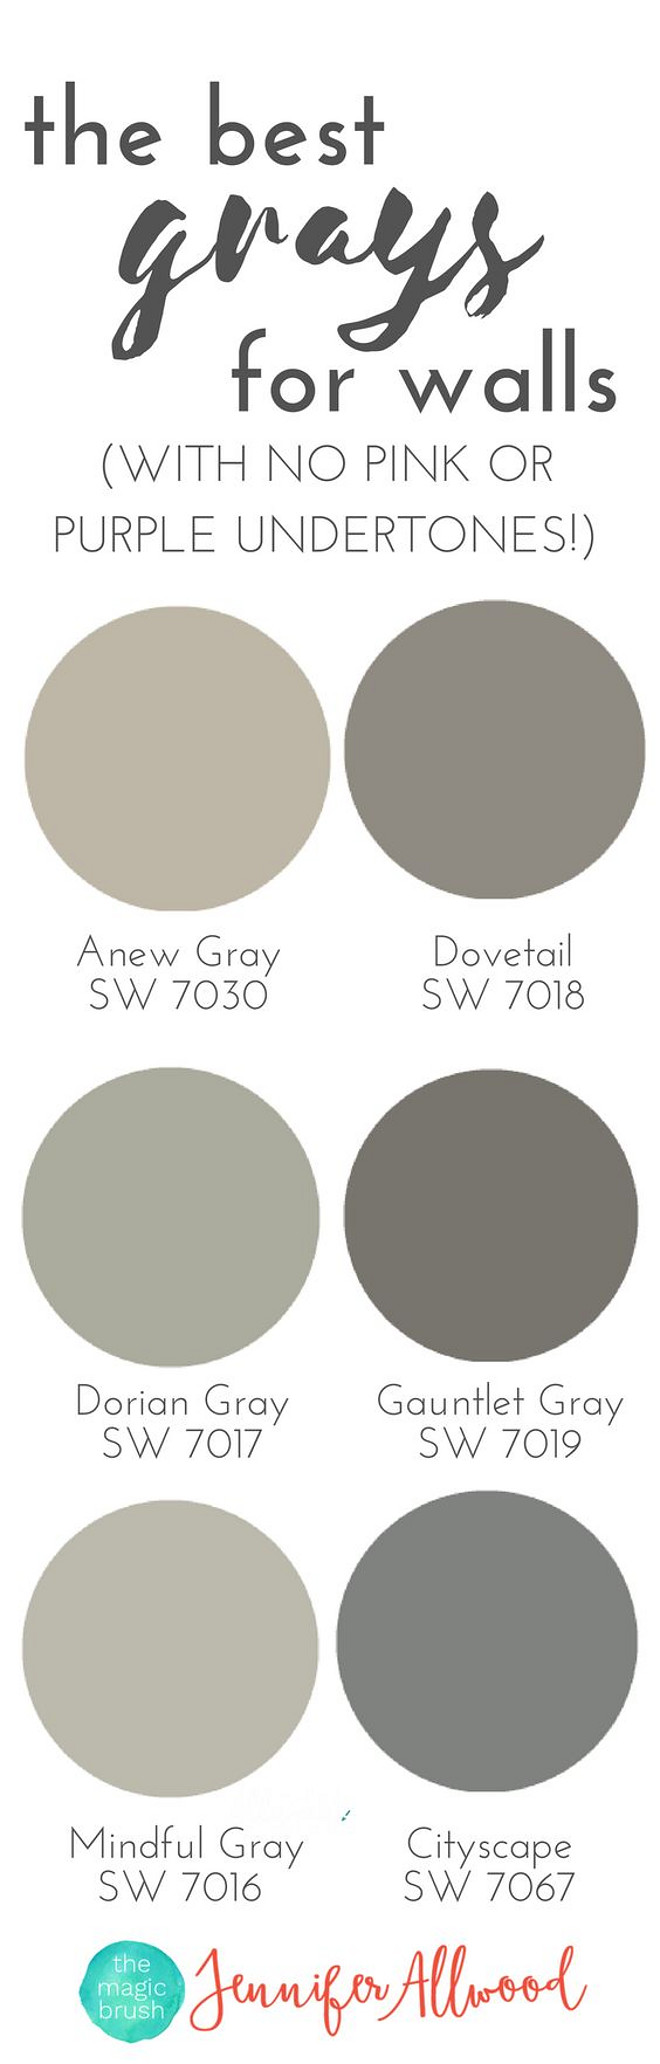 Best Gray Paint Colors with no pink or purple undertones. Sherwin Williams SW 7030 Anew Gray. Sherwin Williams SW 7018 Dovetail. Sherwin Williams SW 7017 Dorian Gray. Sherwin Williams SW 7019 Gauntlet Gray. Sherwin Williams SW 7016 Mindful Gray. Sherwin Williams SW 7067 Cityscape #SherwinWilliamsSW700AnewGray #SherwinWilliamsSW7018Dovetail #SherwinWilliamsSW7017DorianGray #SherwinWilliamsSW7019GauntletGray #SherwinWilliamsSW7016MindfulGray #SherwinWilliamsSW7067Cityscape #BestGrayPaintColors #undertones